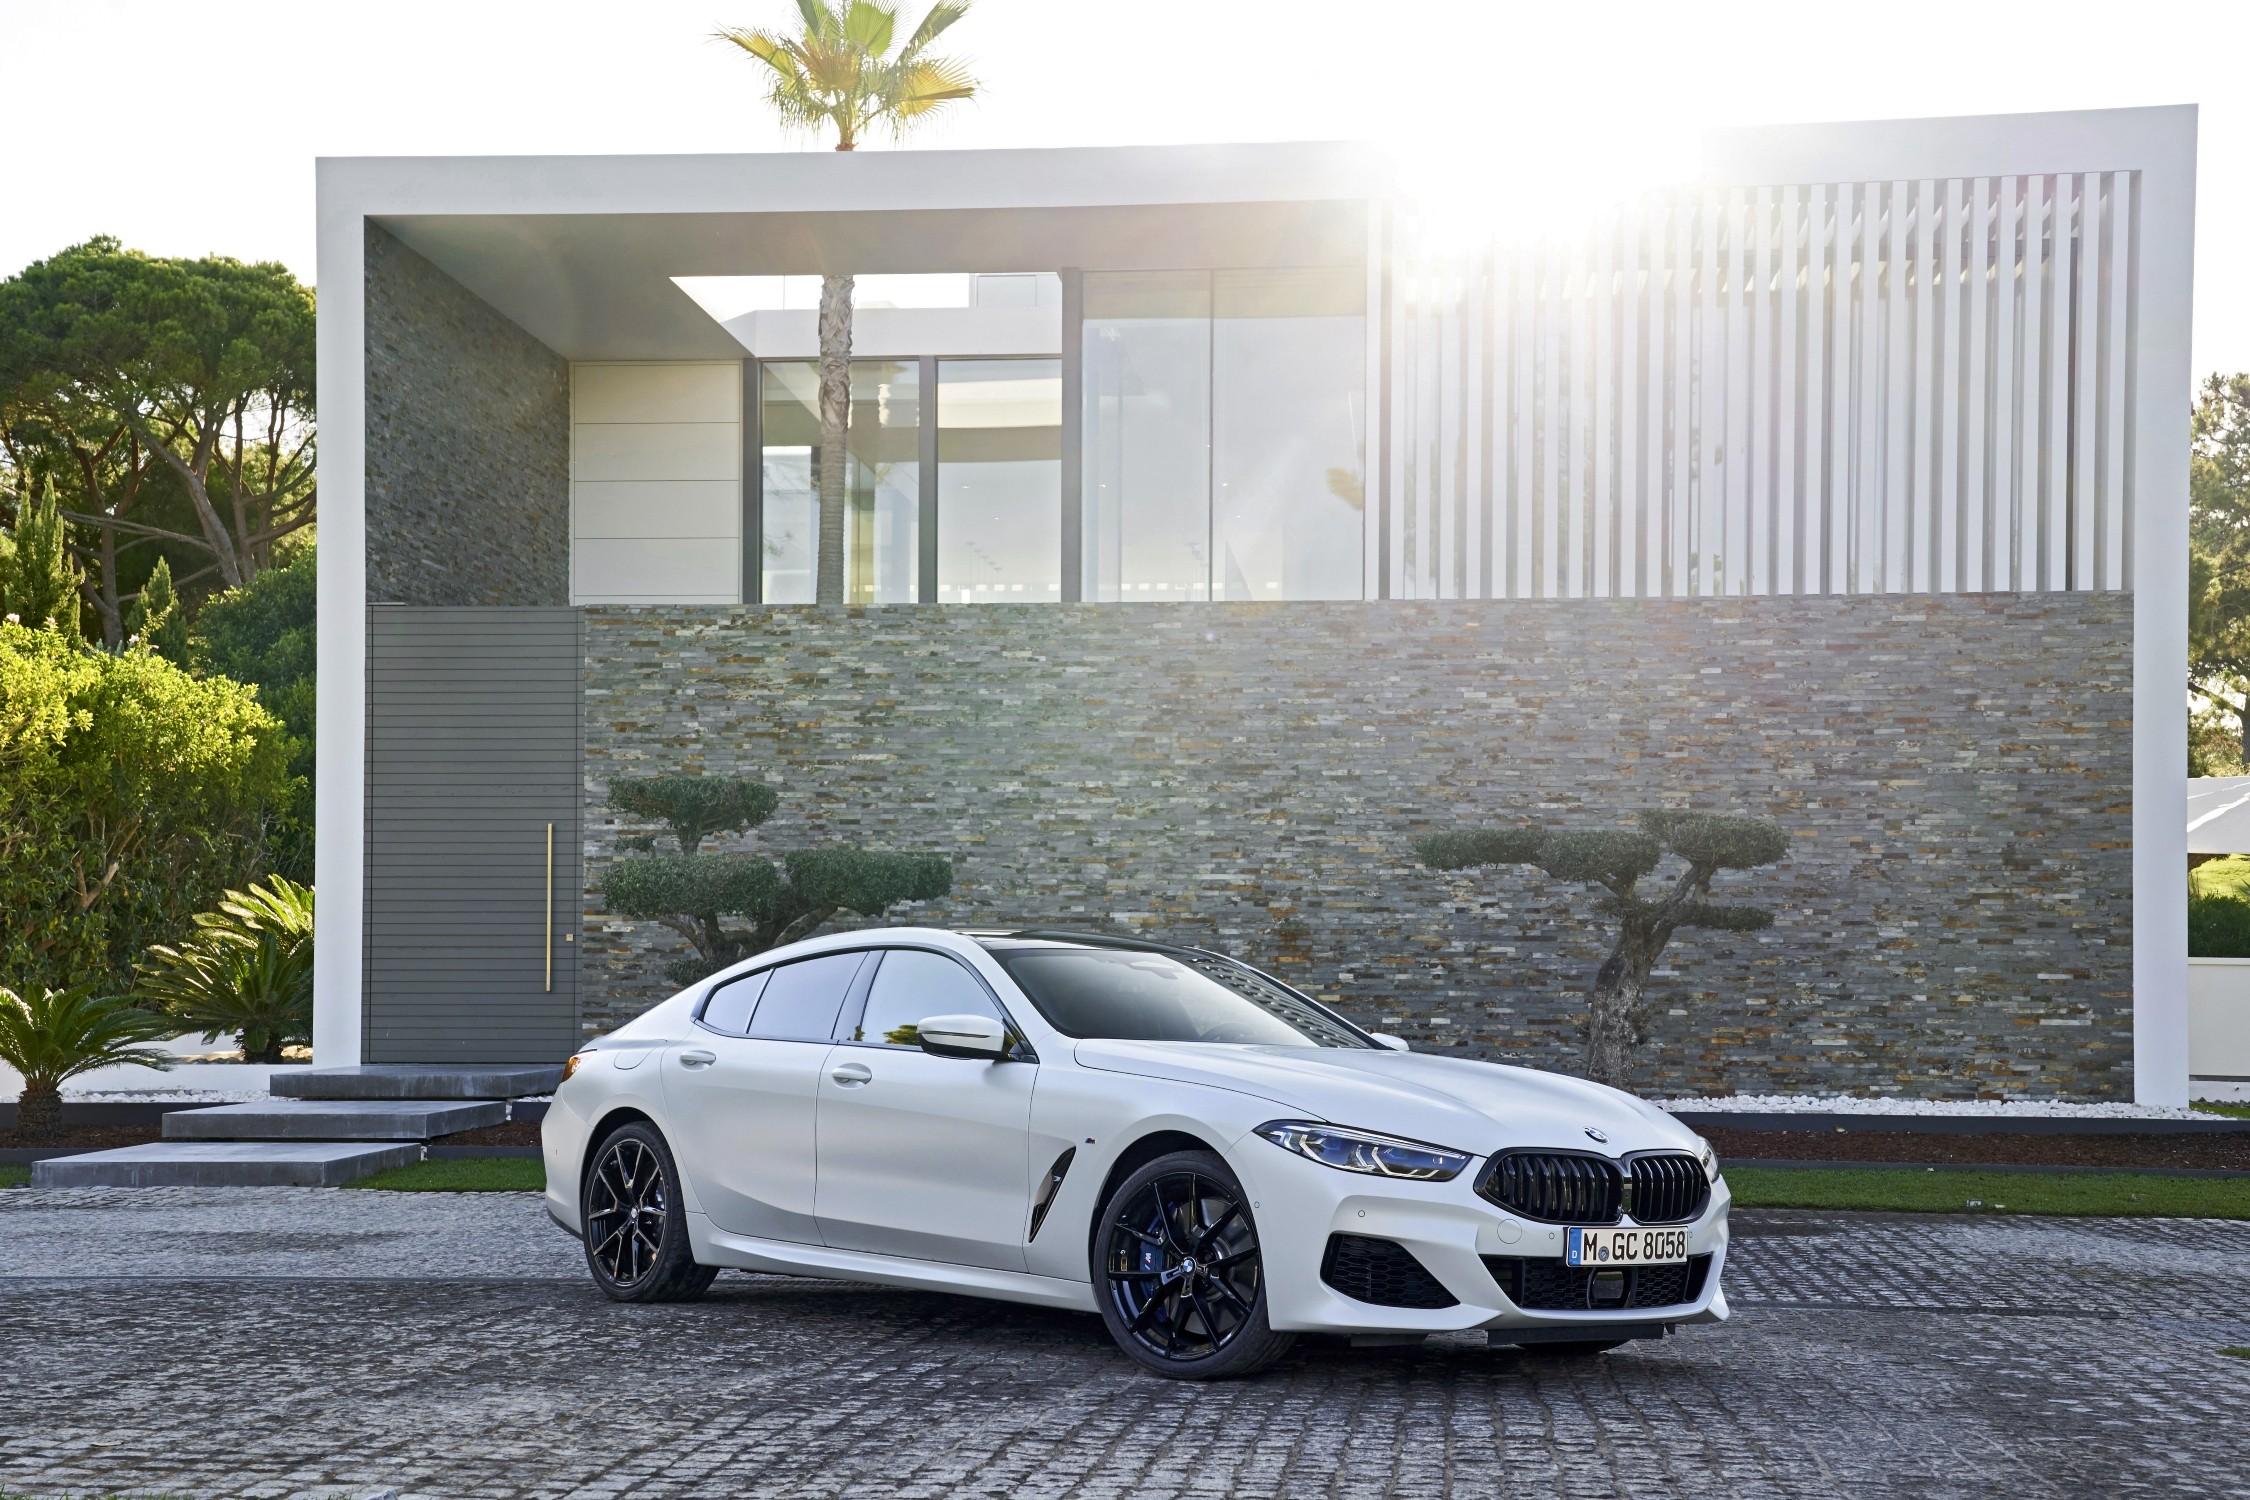 BMW SERIE 8 GRAN COUPE'